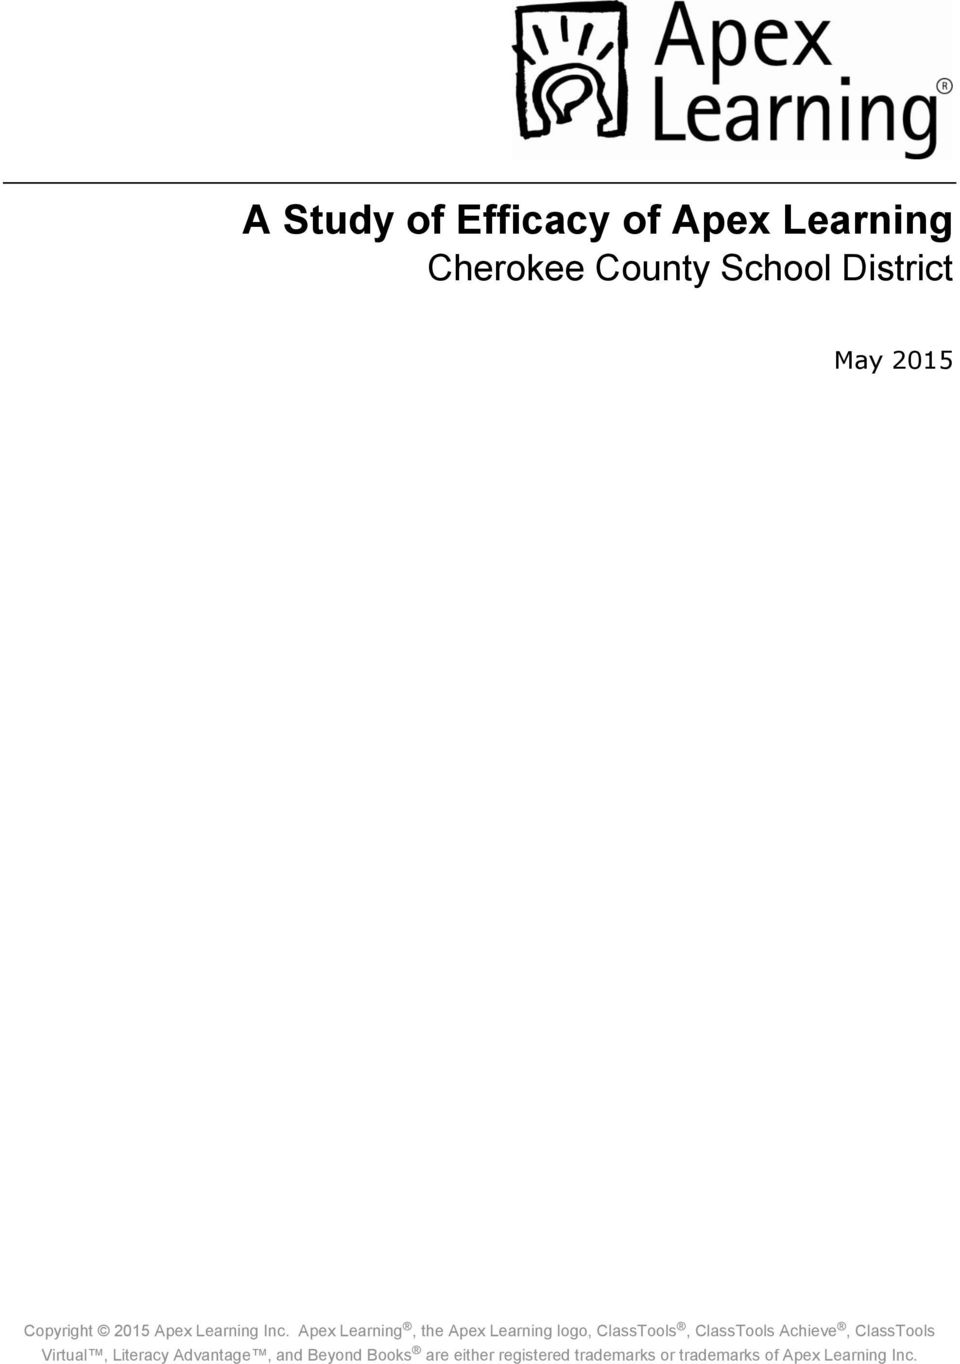 Apex Learning, the Apex Learning logo, ClassTools, ClassTools Achieve,